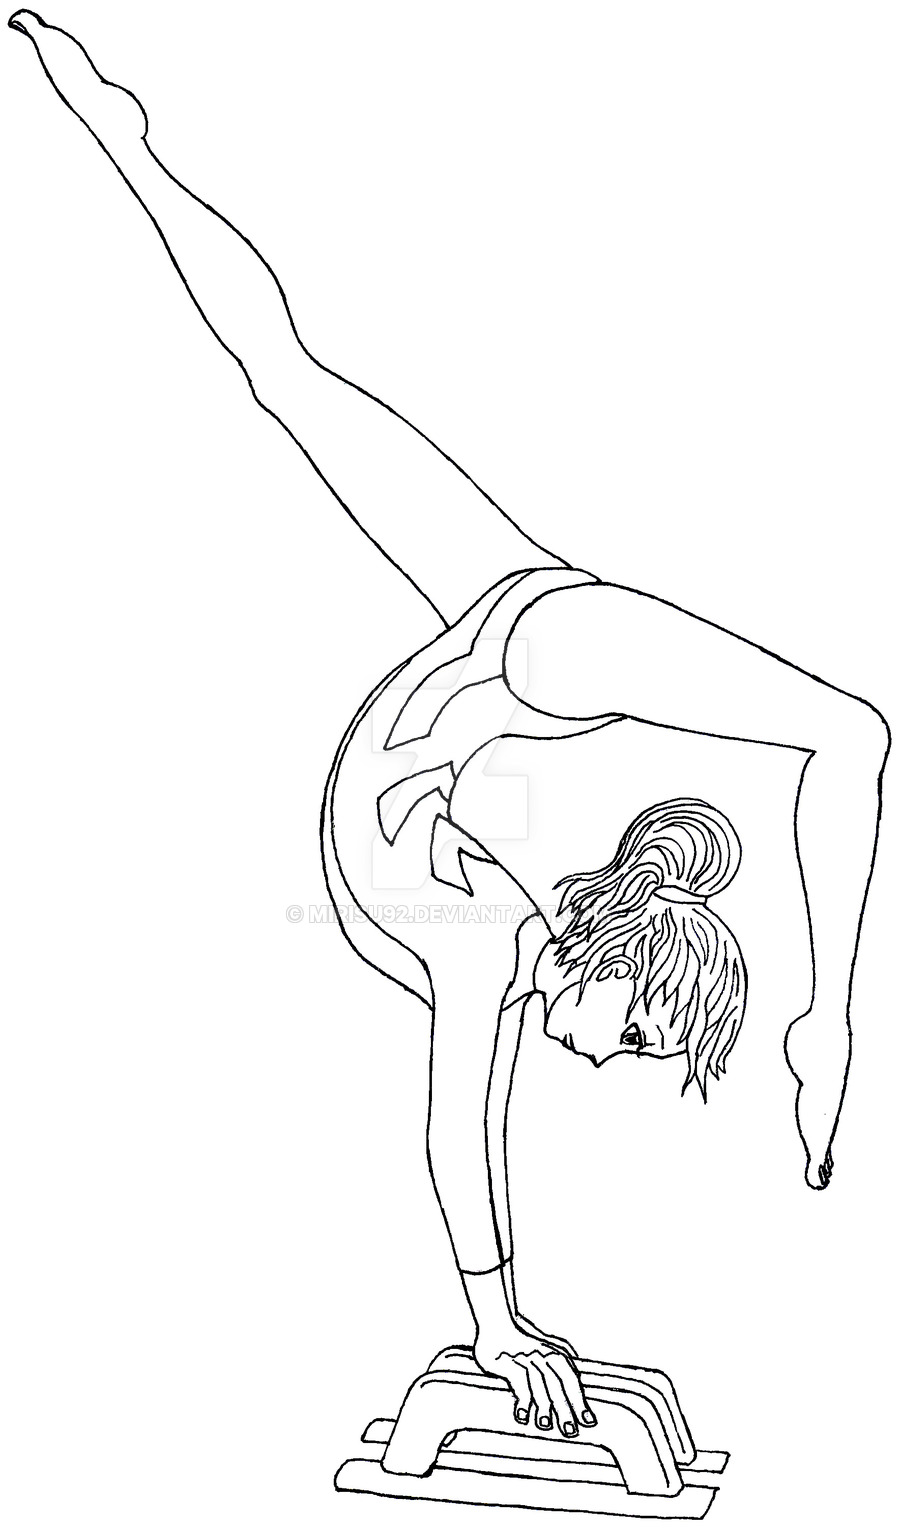 Gymnast Drawing